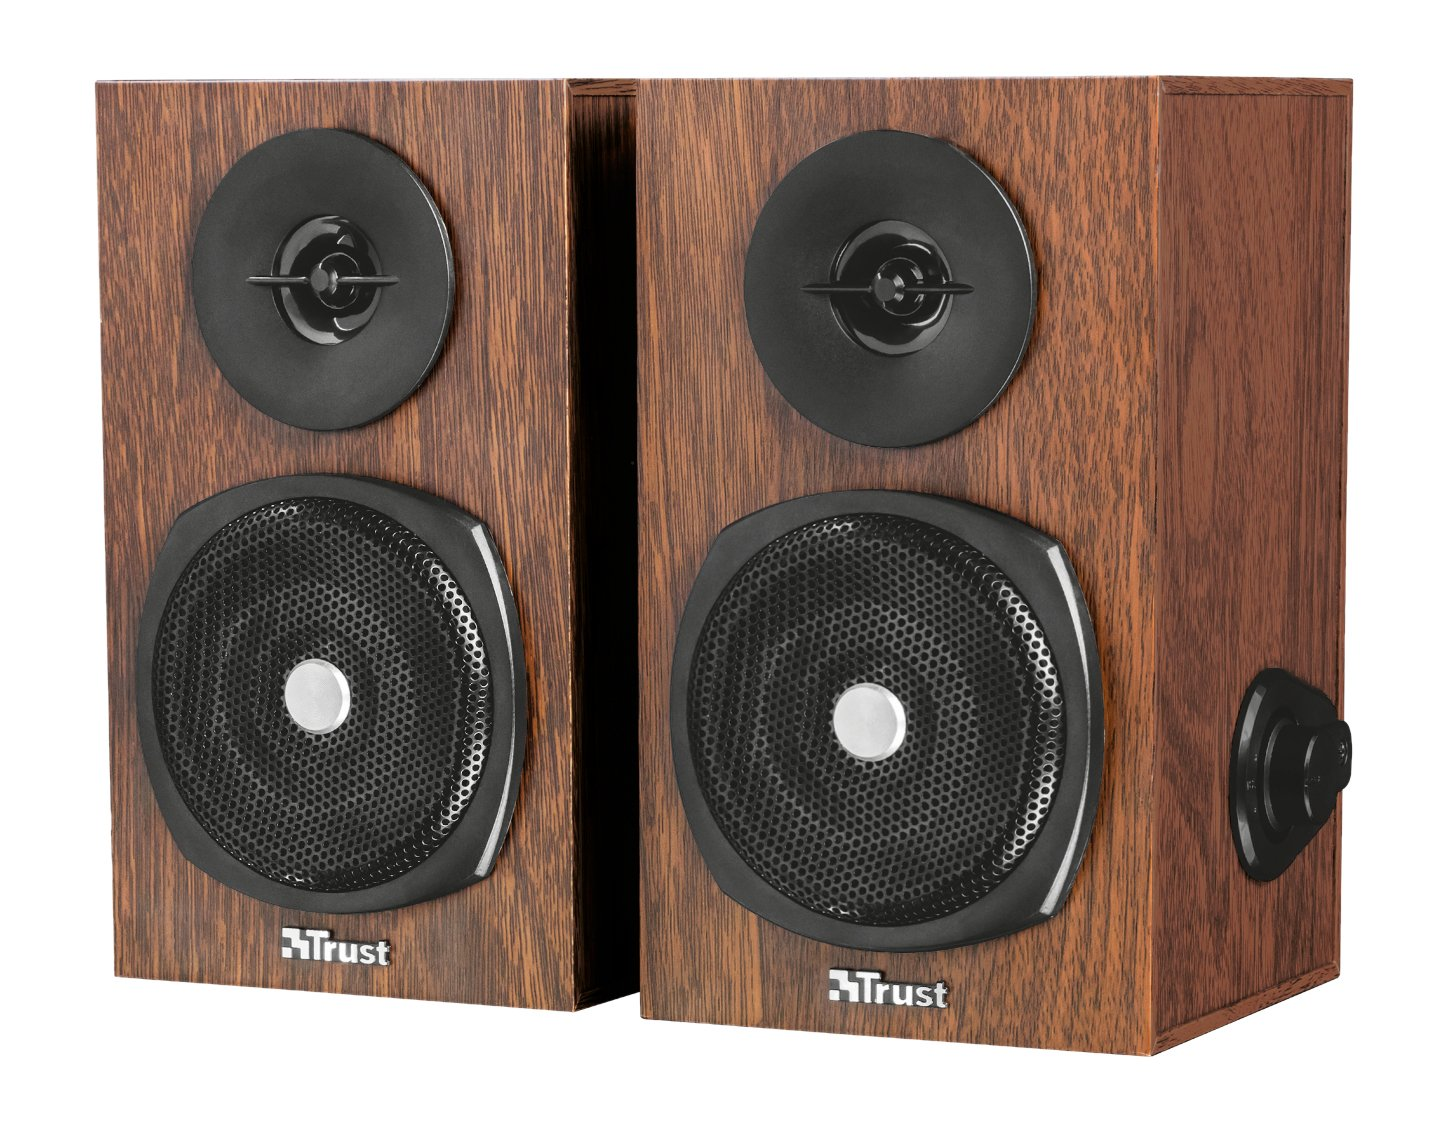 Trust Vigor - Set de Altavoces de Madera 2.0, 24 W, Color marrón